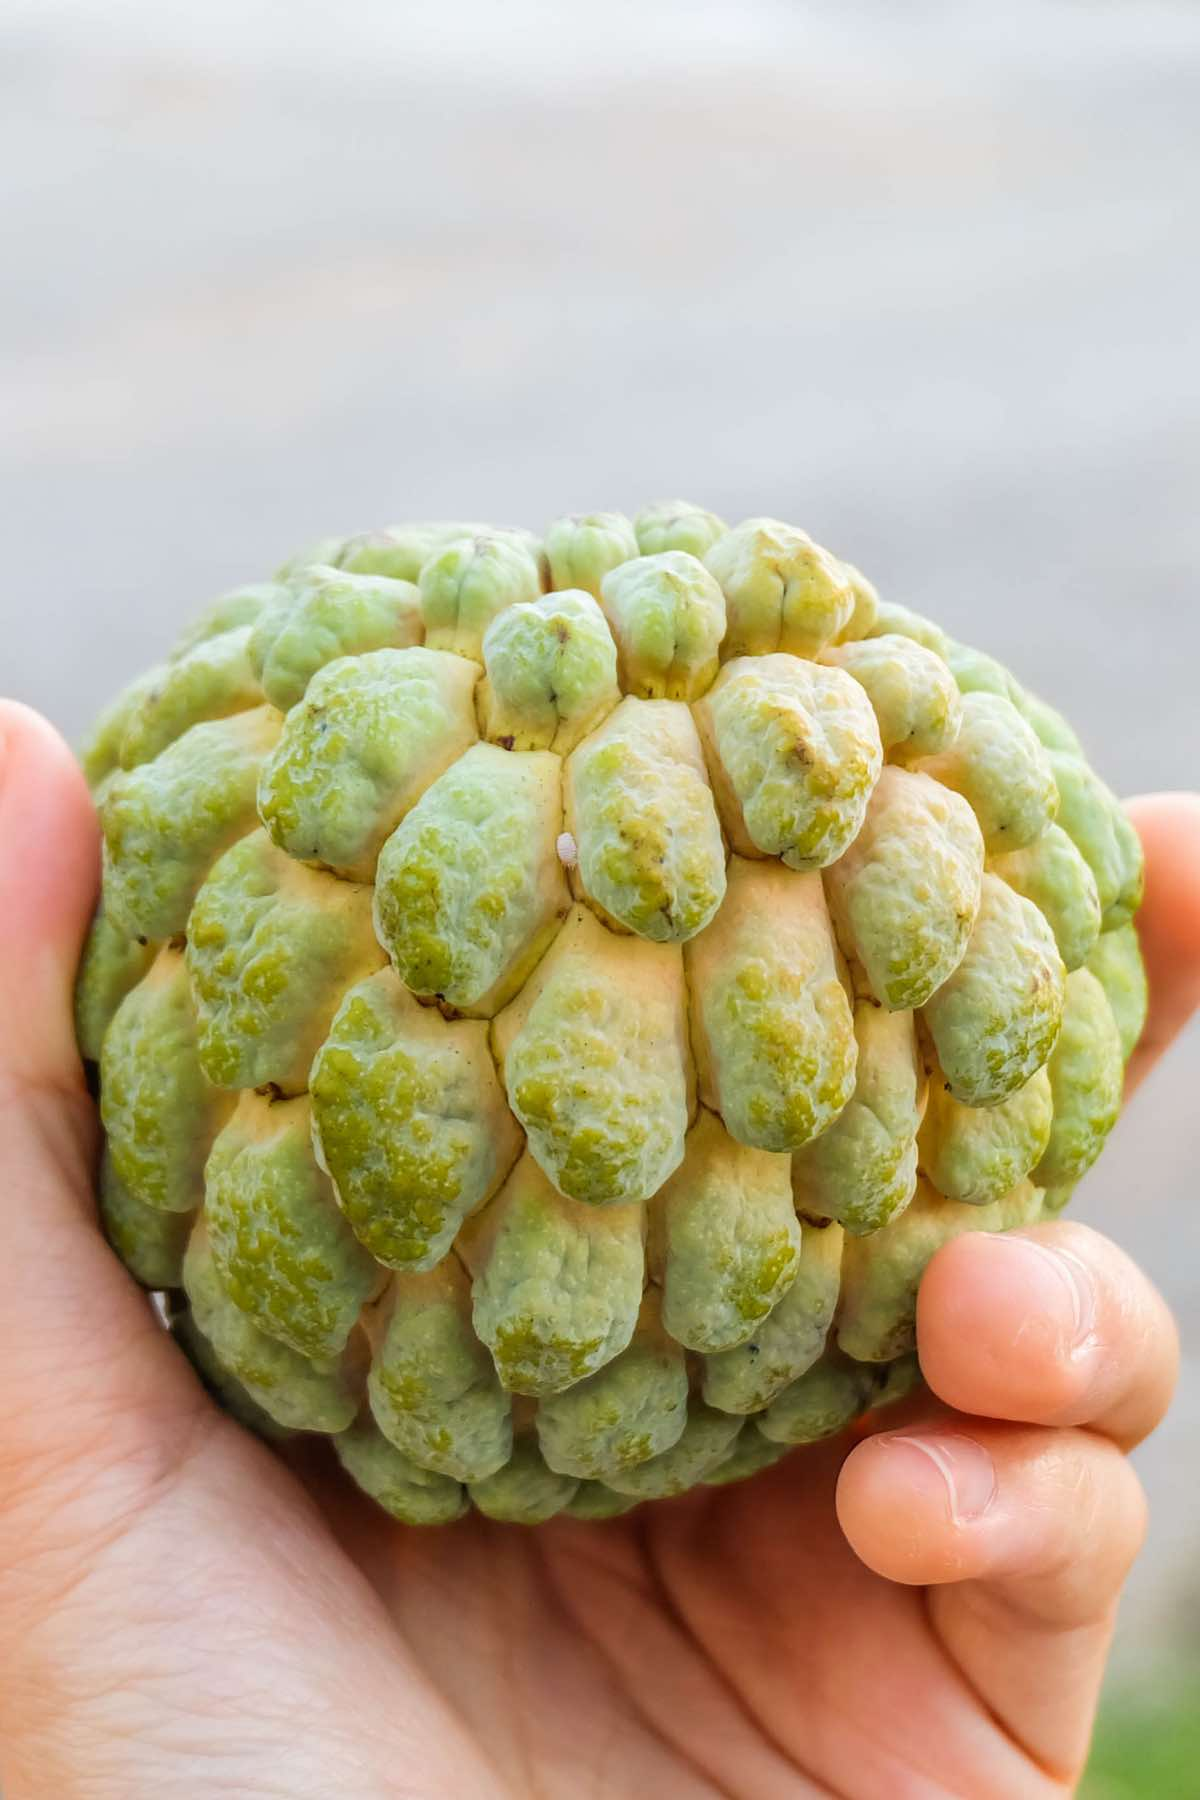 Closeup view of a custard apple with knobby green skin